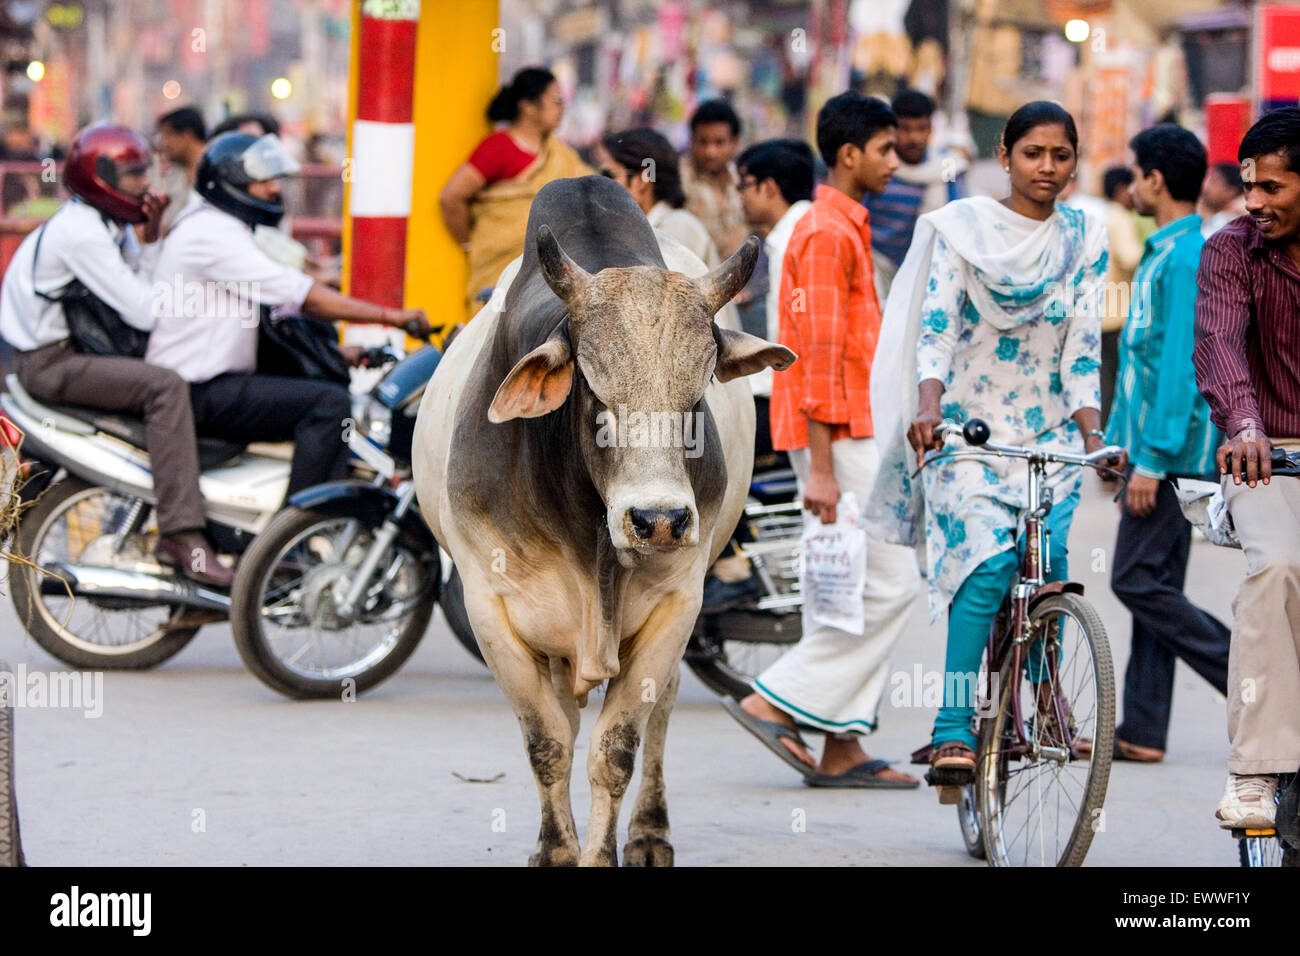 Sacred Brahmin bull / cow wanders through the street.  Here at Gadolia Chowk a busy shopping distrct / area of Varanasi. Stock Photo